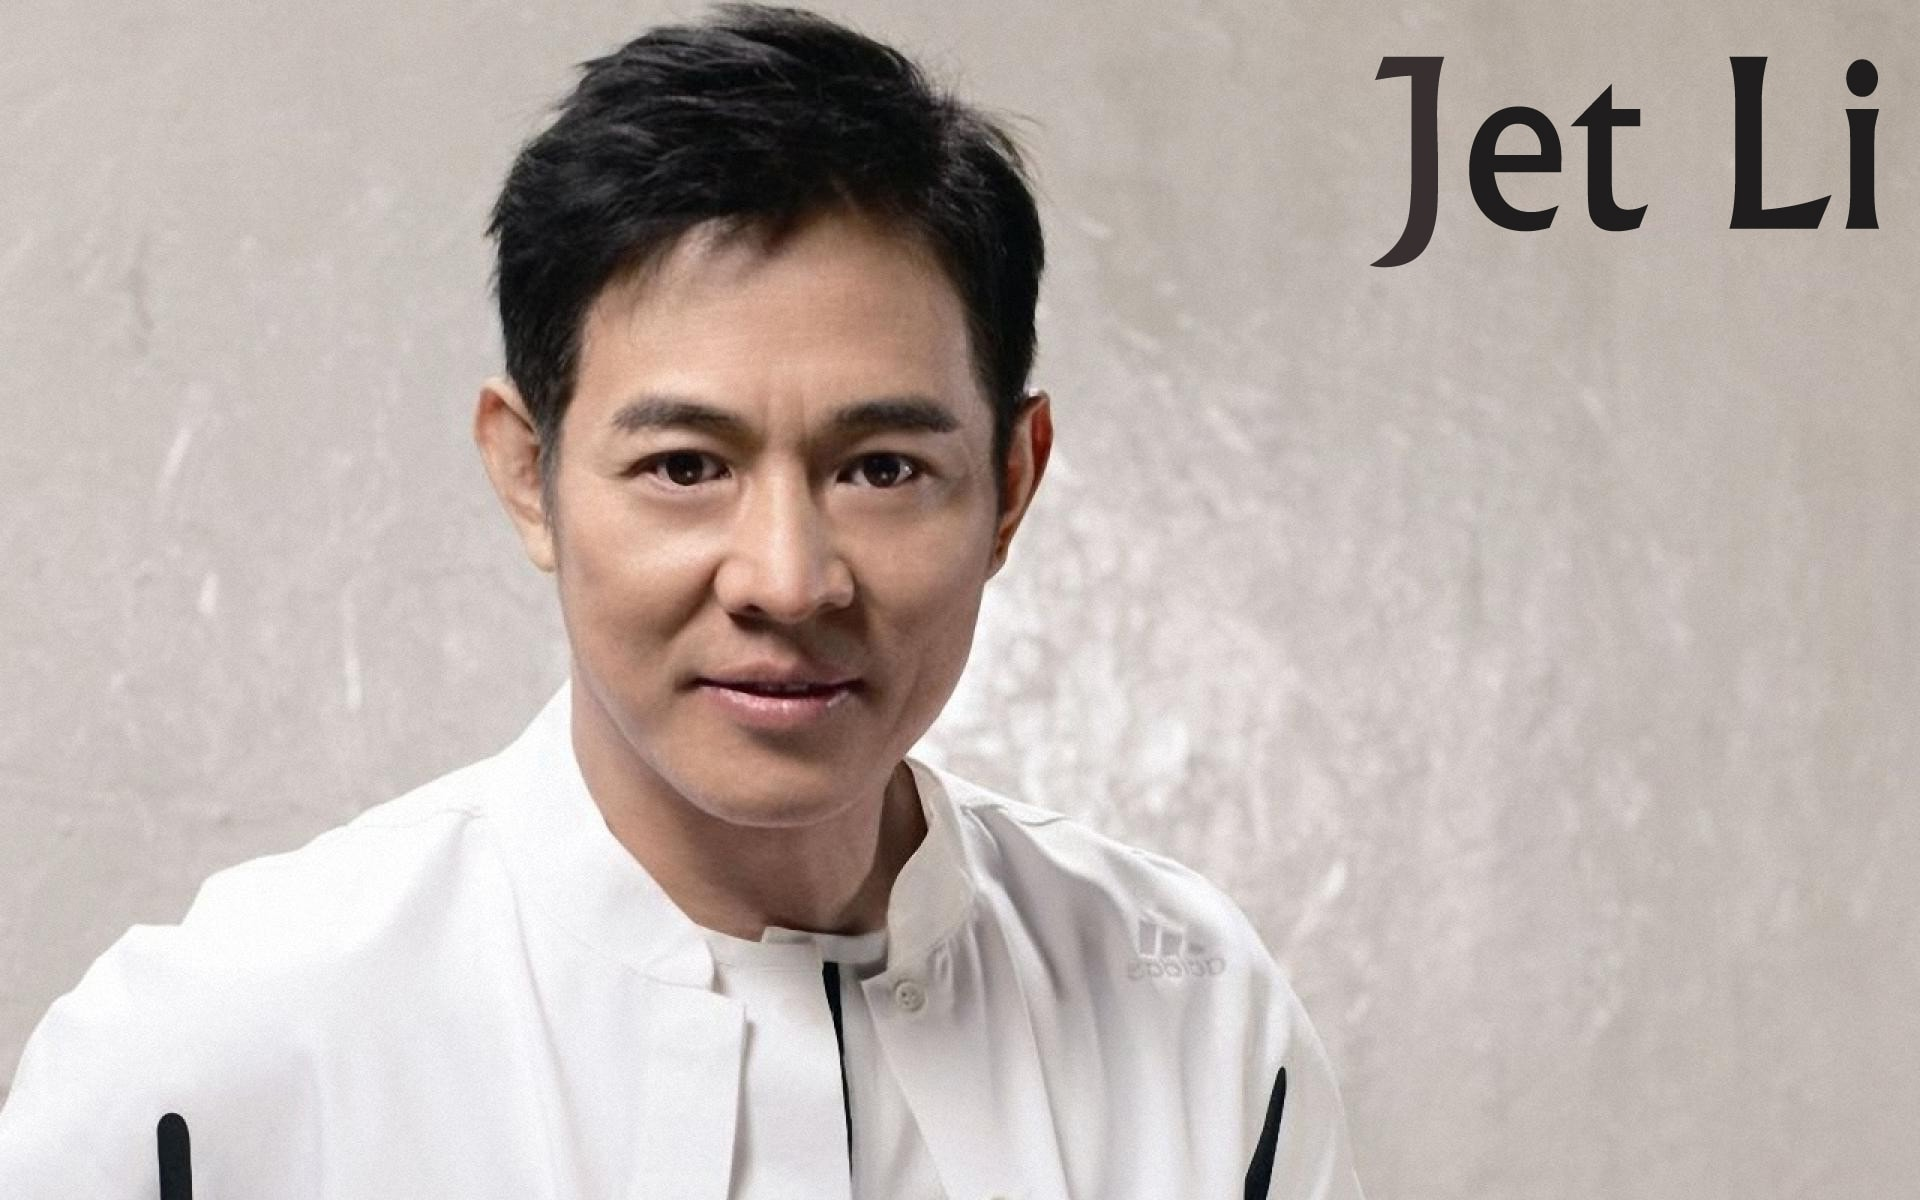 Jet Li HQ wallpapers